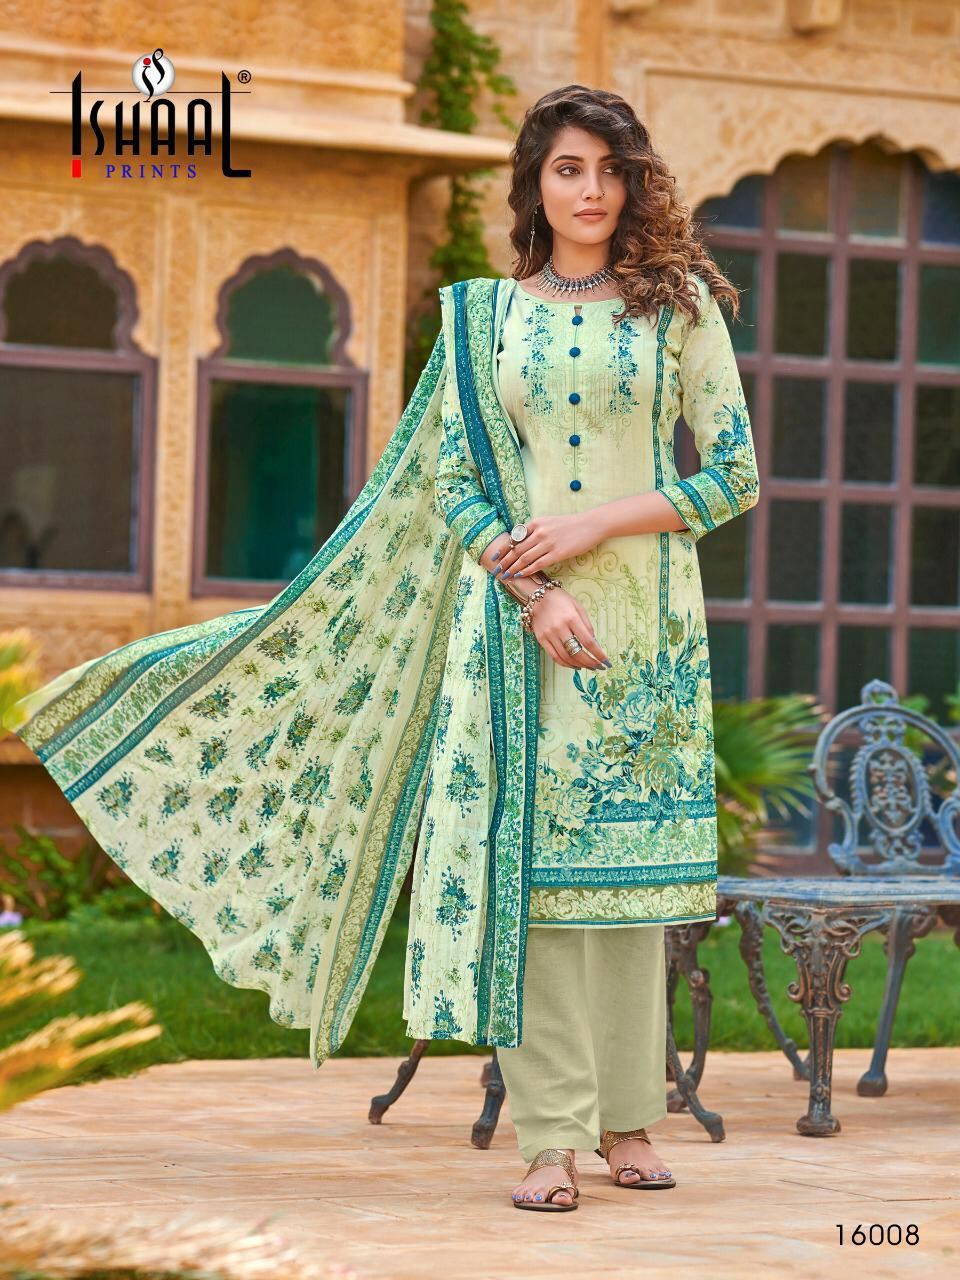 Ishaal Gulmohar Vol 16 Salwar Suit Wholesale Catalog 10 Pcs 9 - Ishaal Gulmohar Vol 16 Salwar Suit Wholesale Catalog 10 Pcs